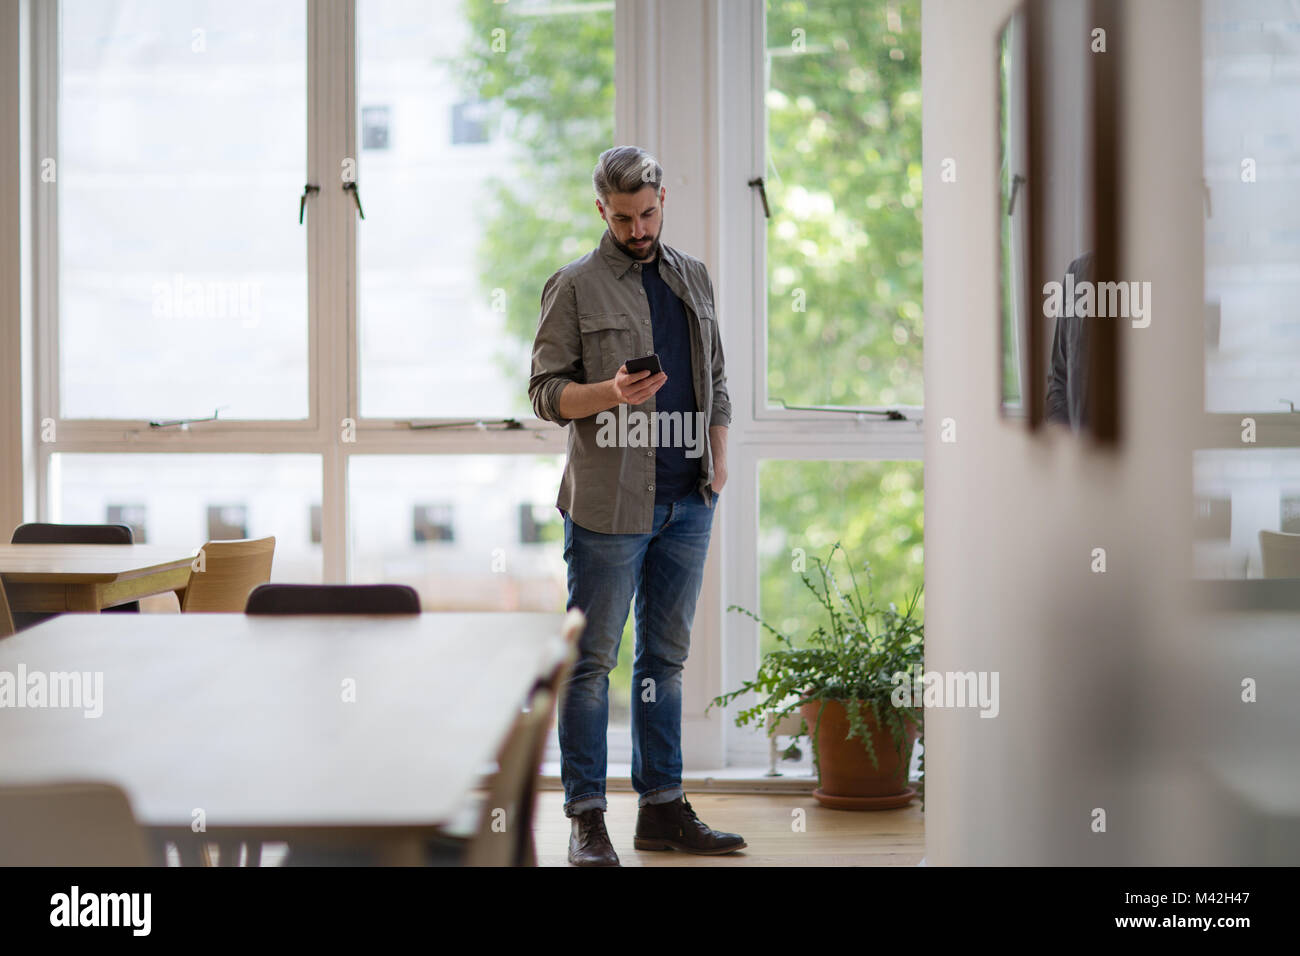 Businessman in empty office looking at smartphone Photo Stock